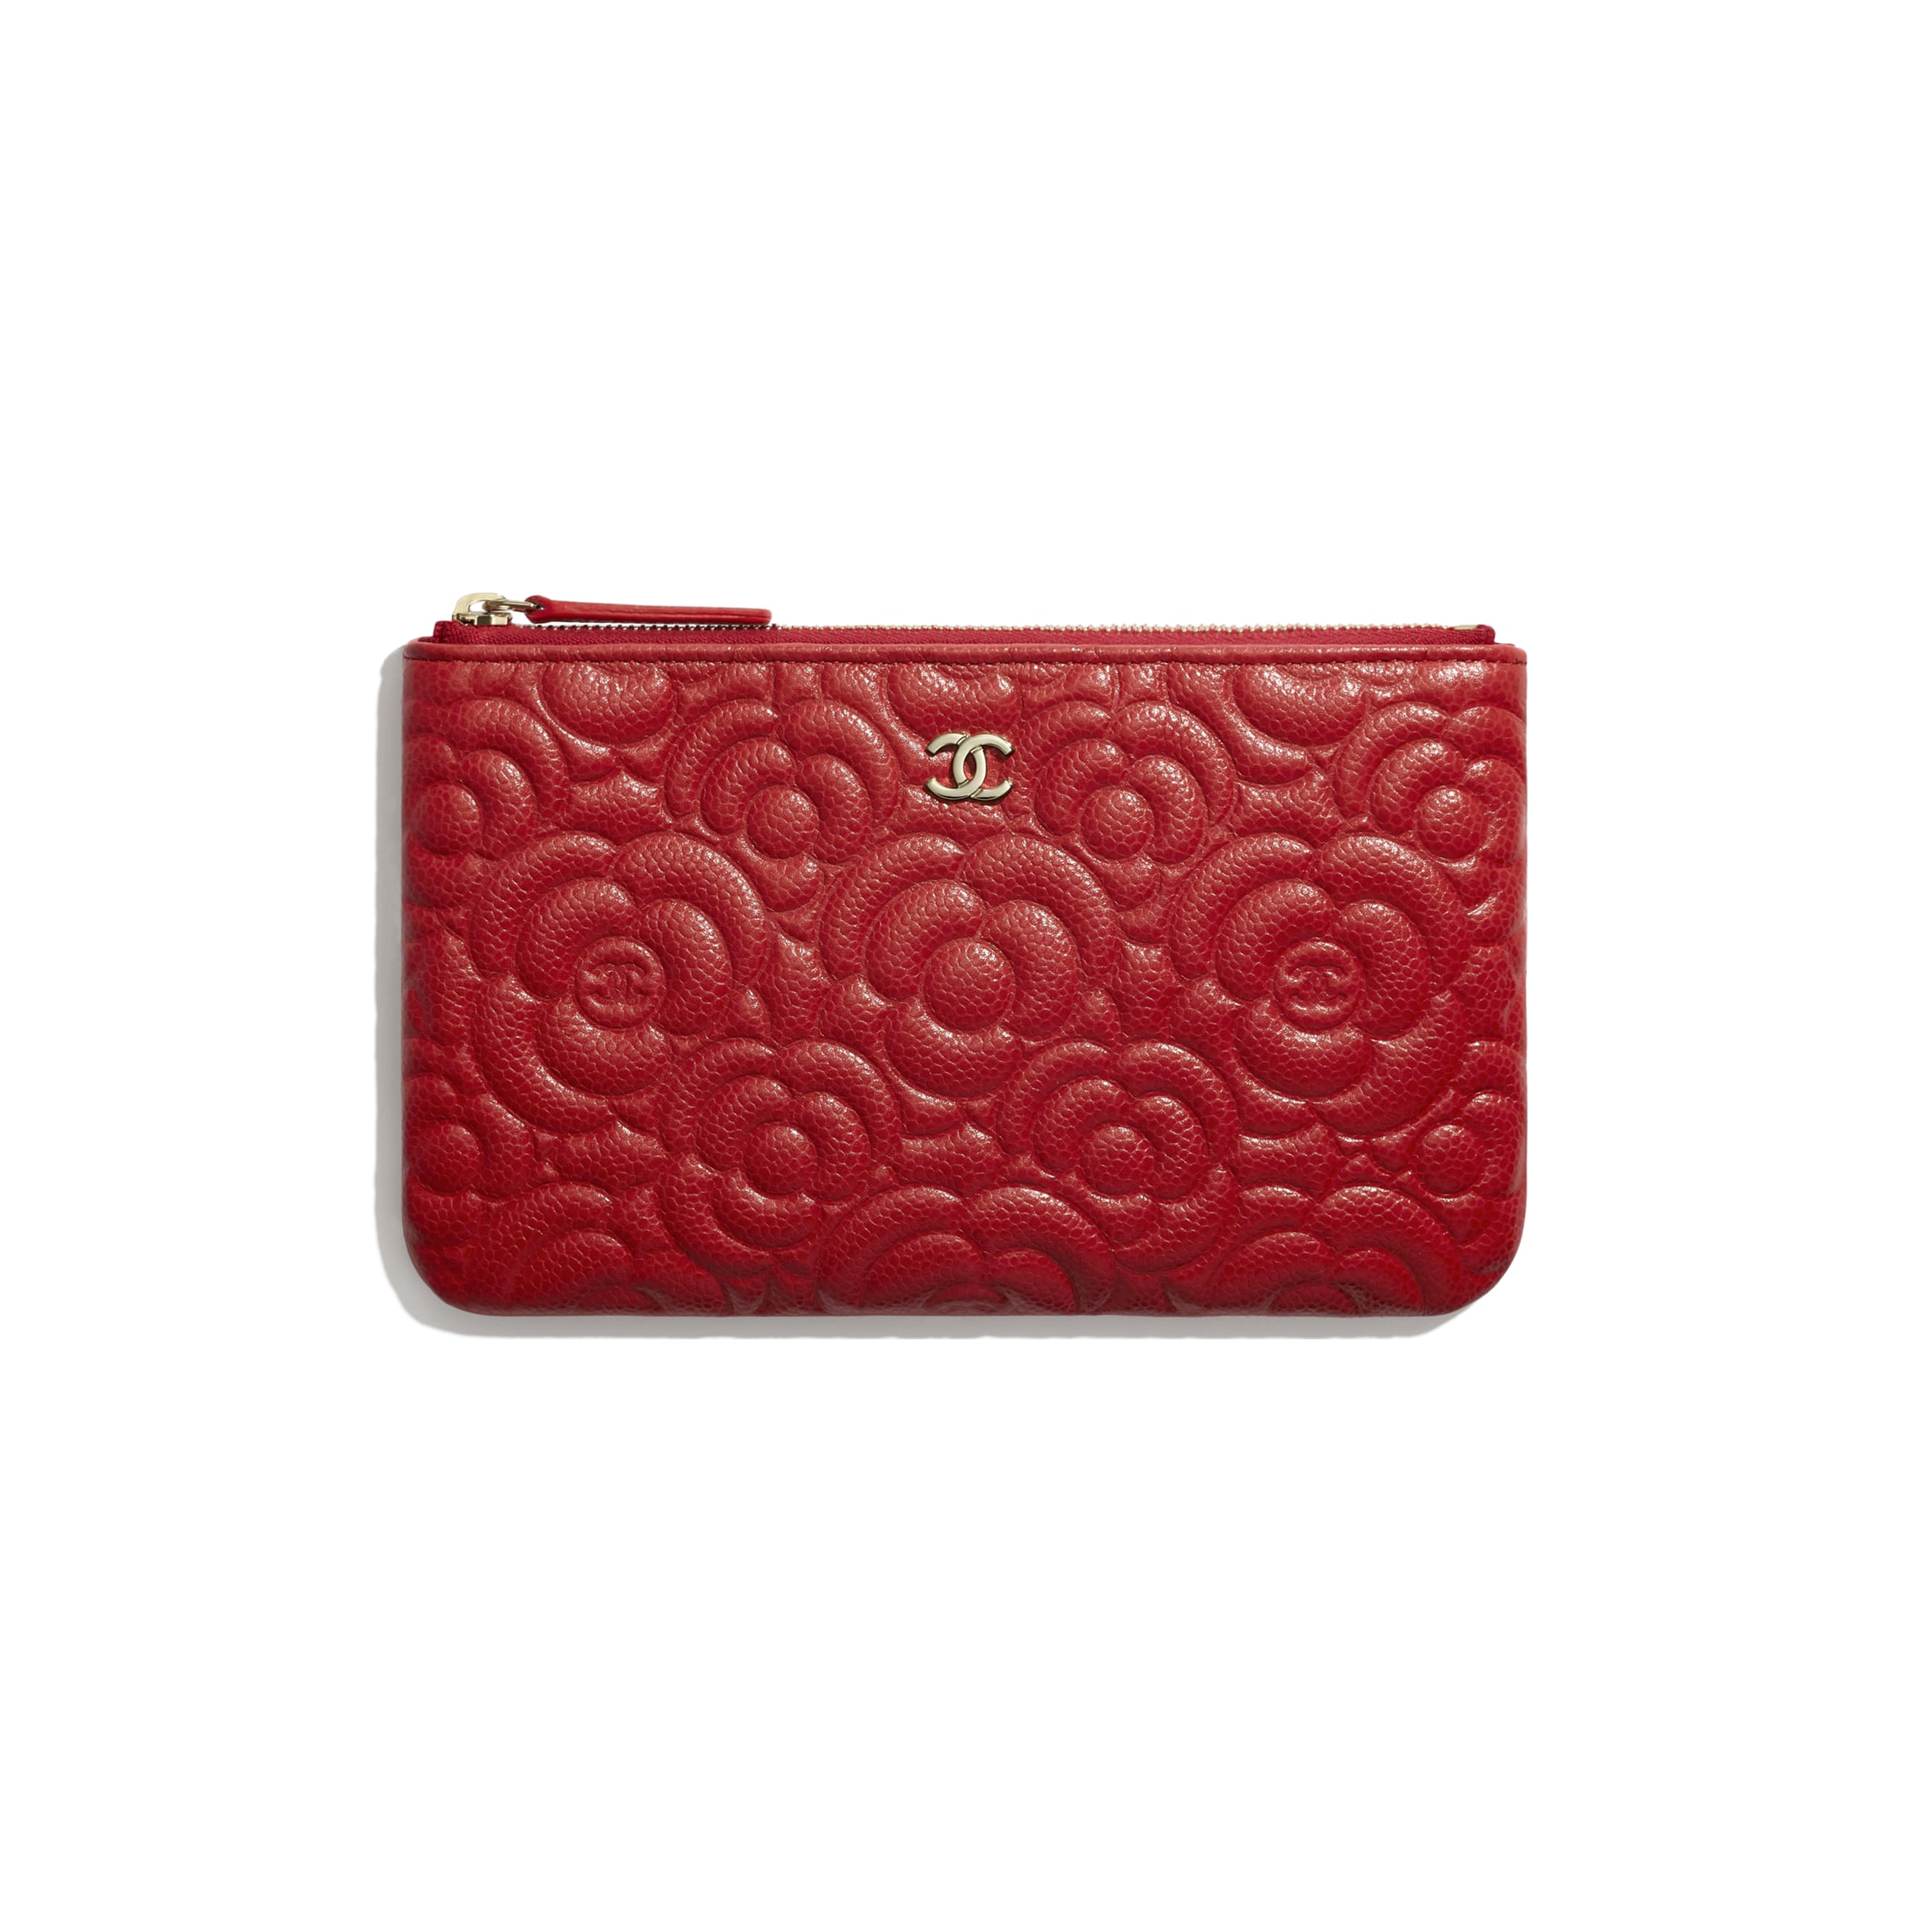 Small Pouch - Red - Grained Shiny Calfskin & Gold-Tone Metal - CHANEL - Default view - see standard sized version